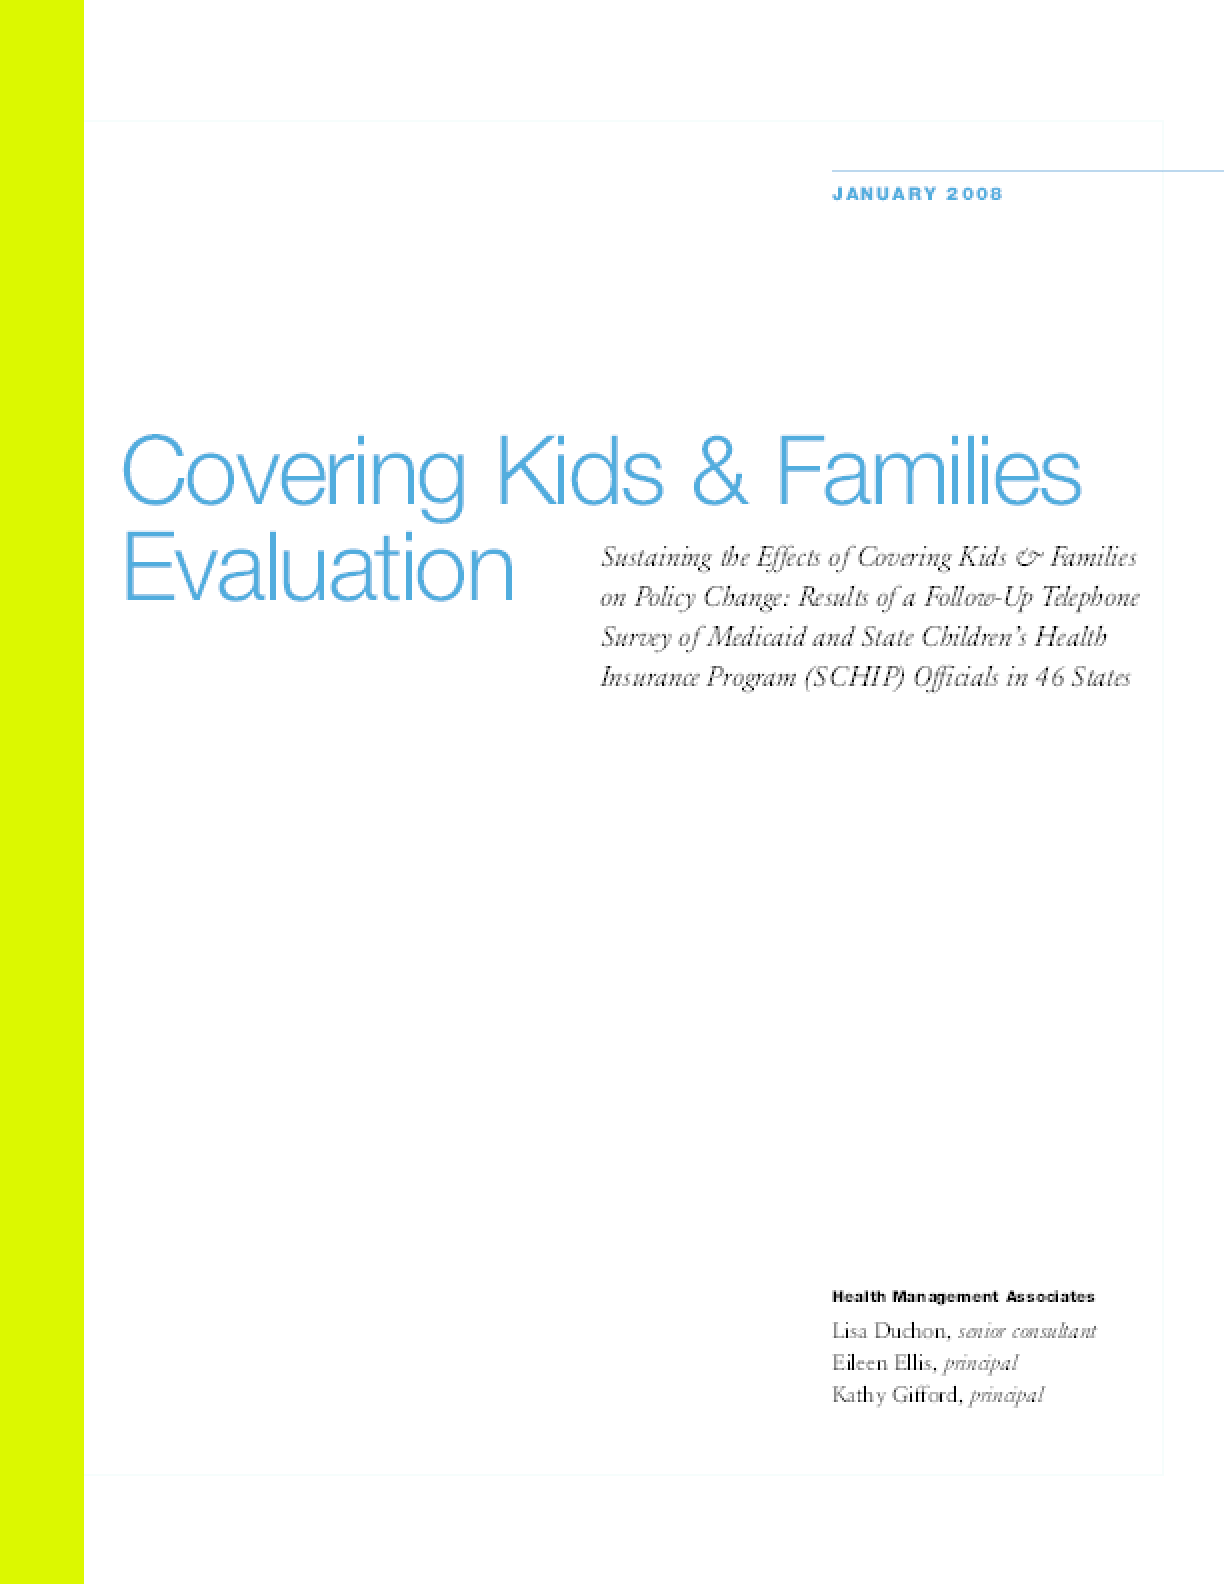 Covering Kids & Families Evaluation: Sustaining the Effects of Covering Kids & Families on Policy Change